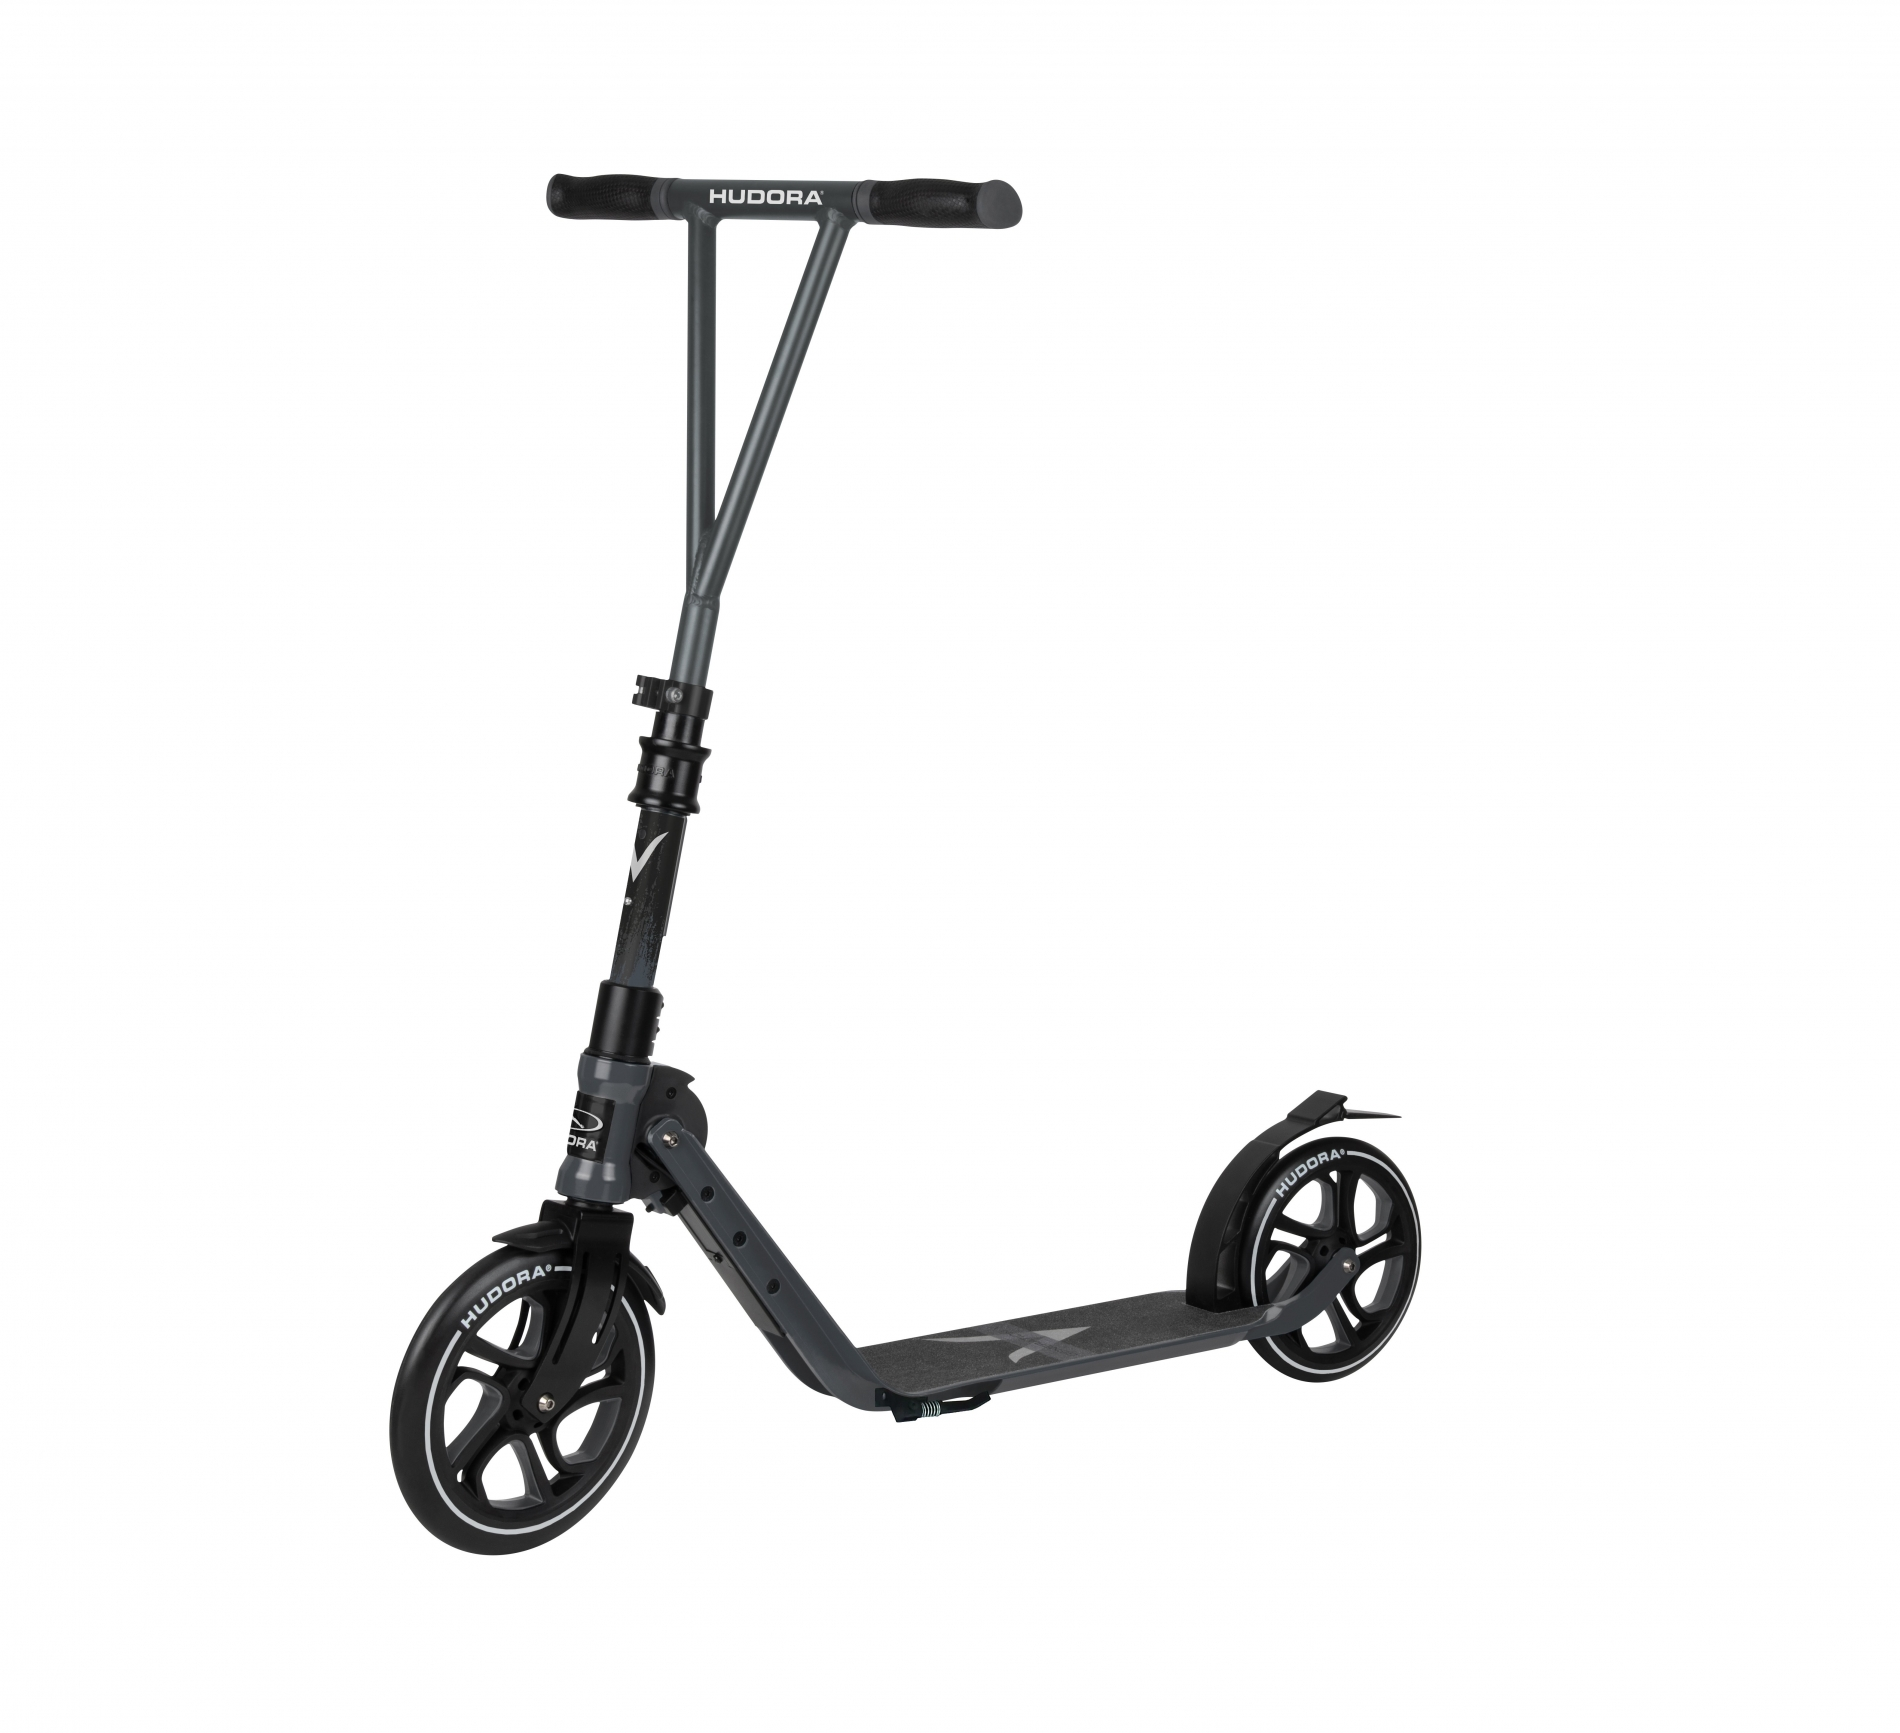 Самокат HUDORA Big Wheel Generation V 230 Black (14117)